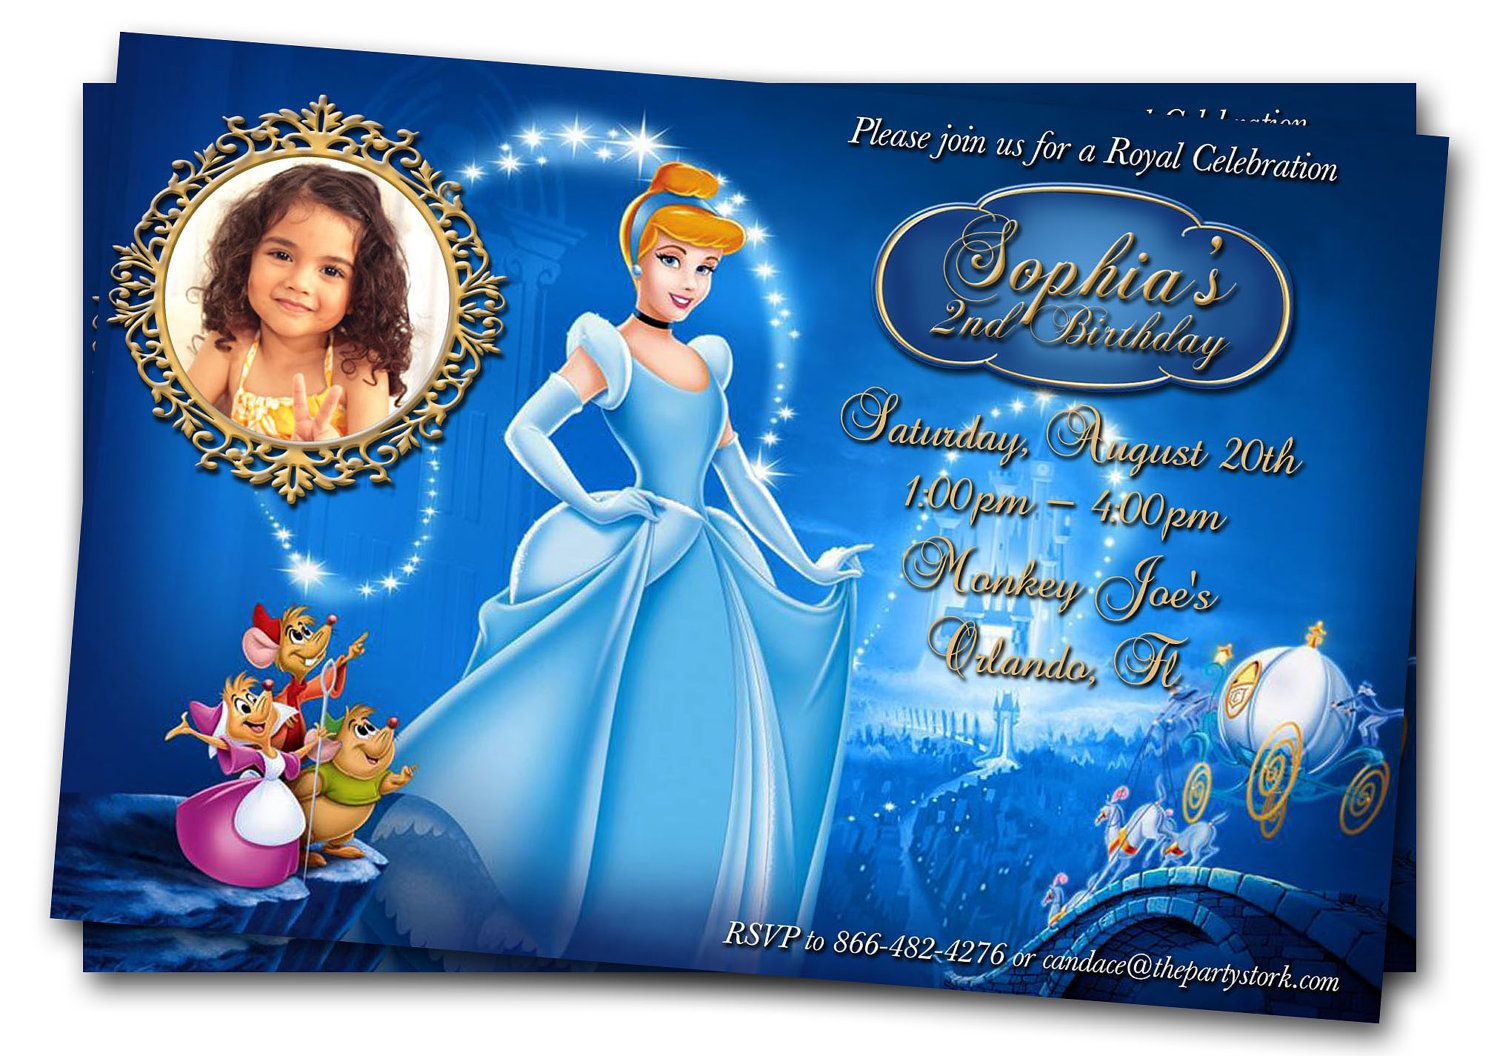 disney princess party invitation templates%0A polite 2 week notice letter